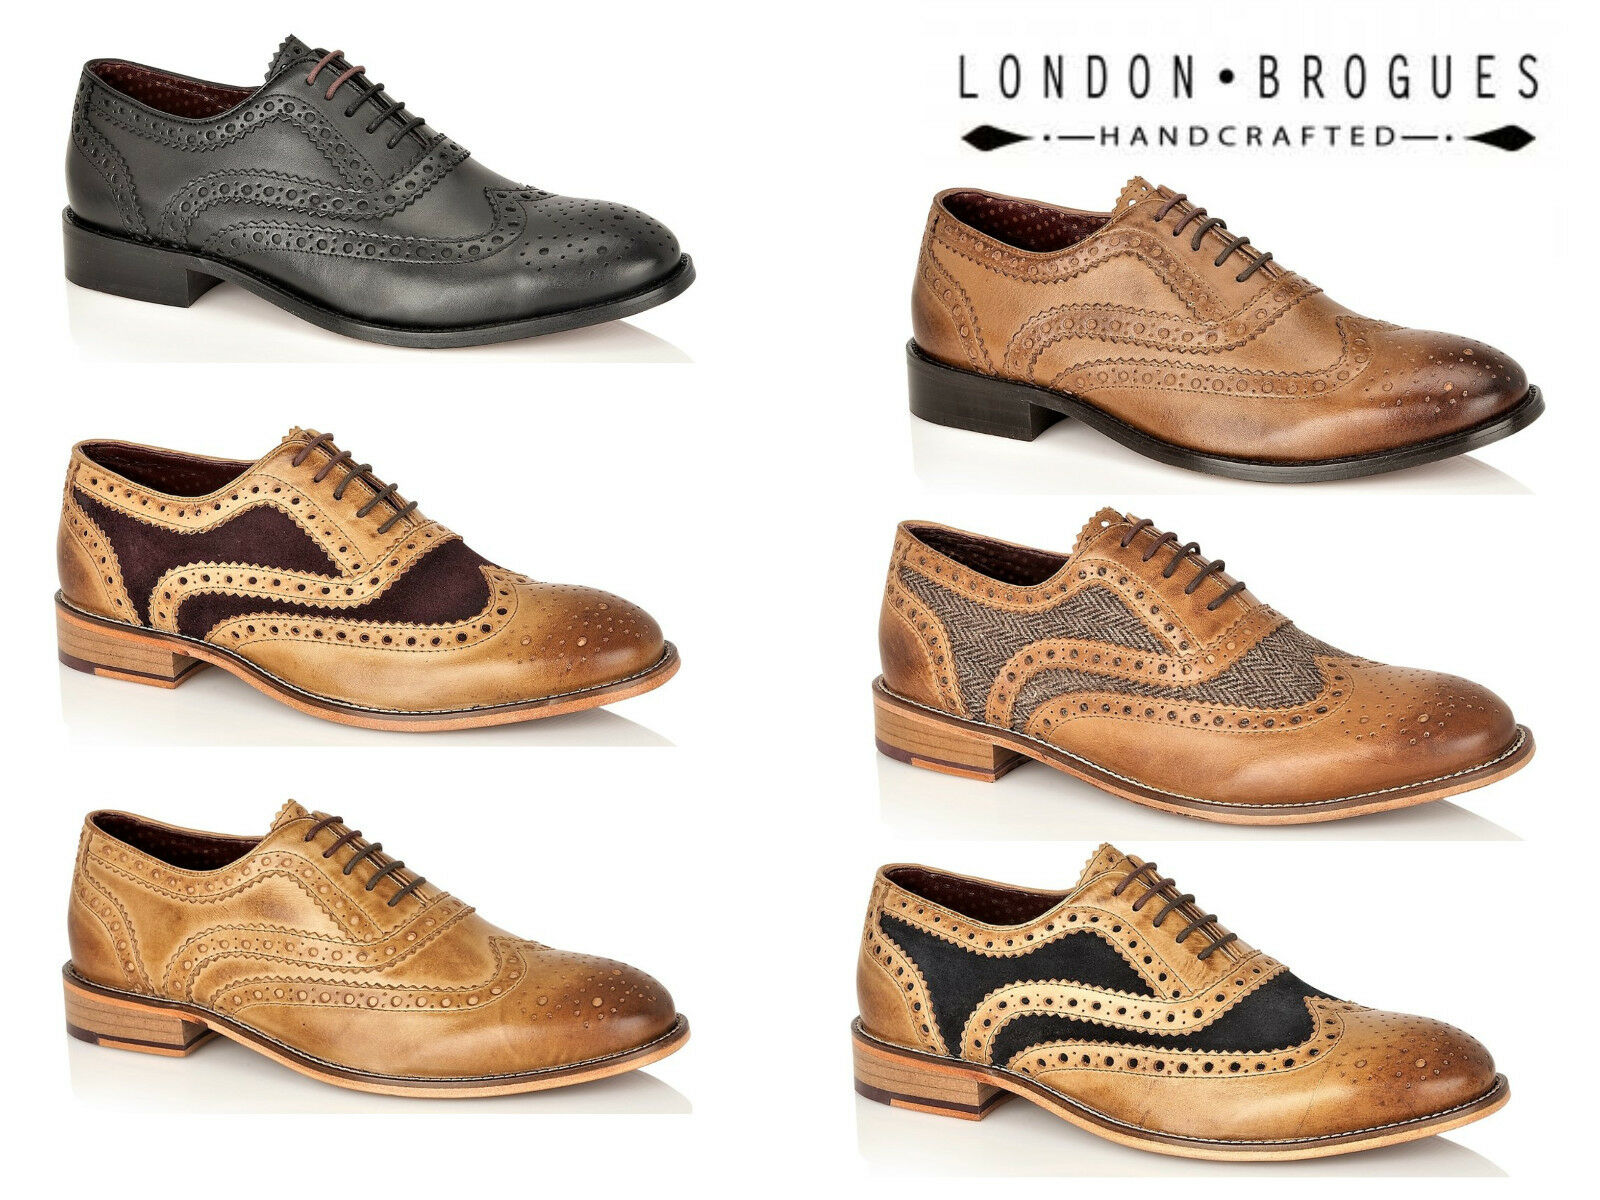 Uomo London Brogues Watson Full Leder Brogues 5 Eye Lace Up Smart Schuhes